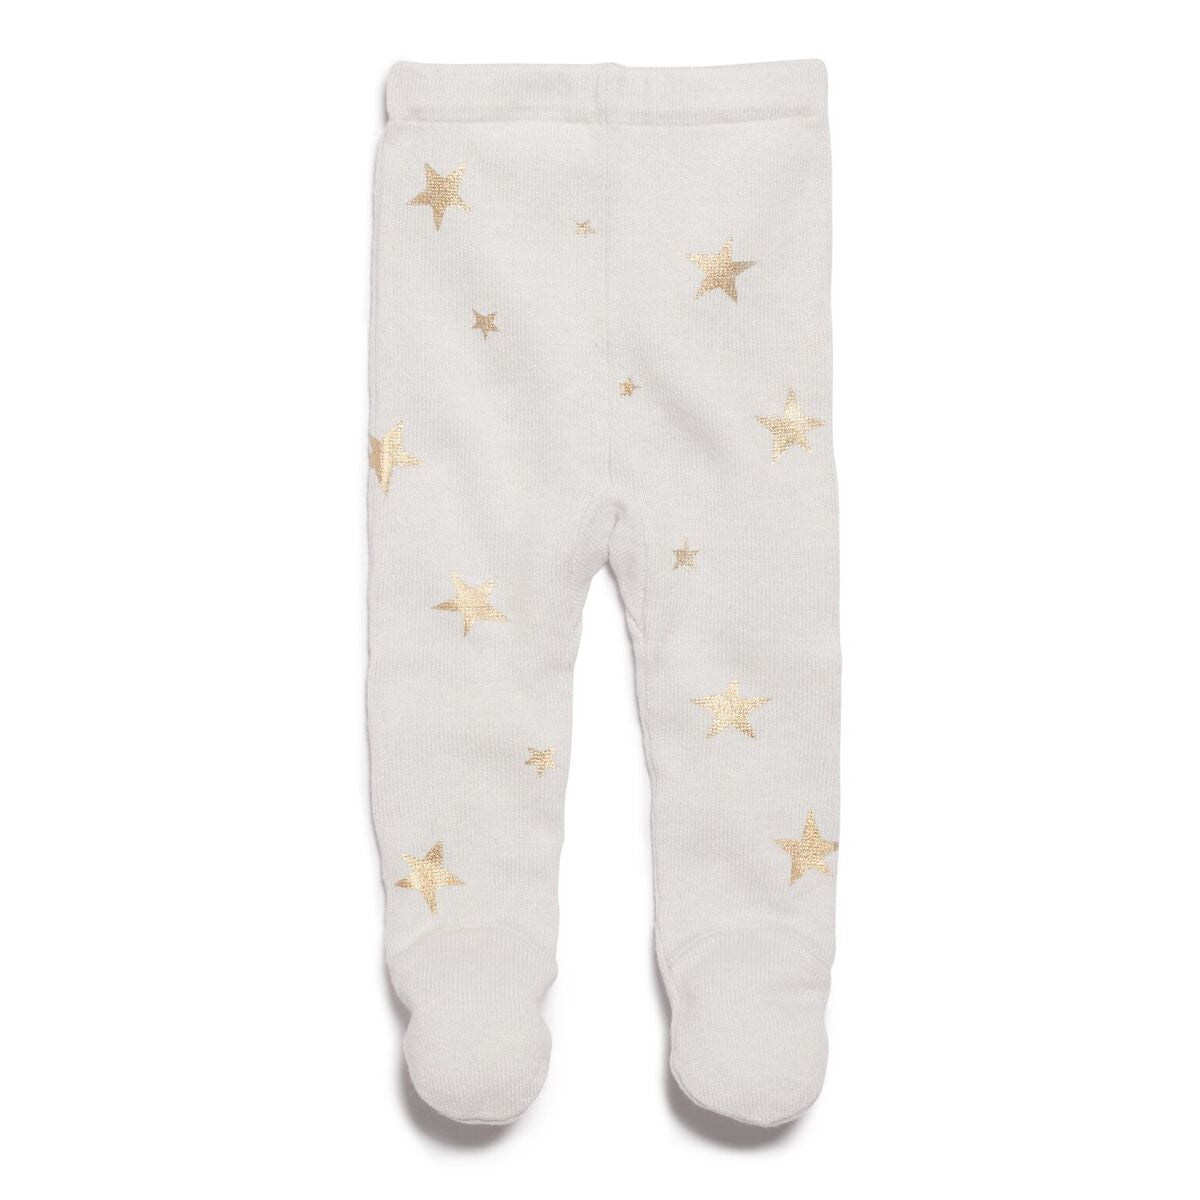 Knitted Leggings with Feet - Glacier Star Bright